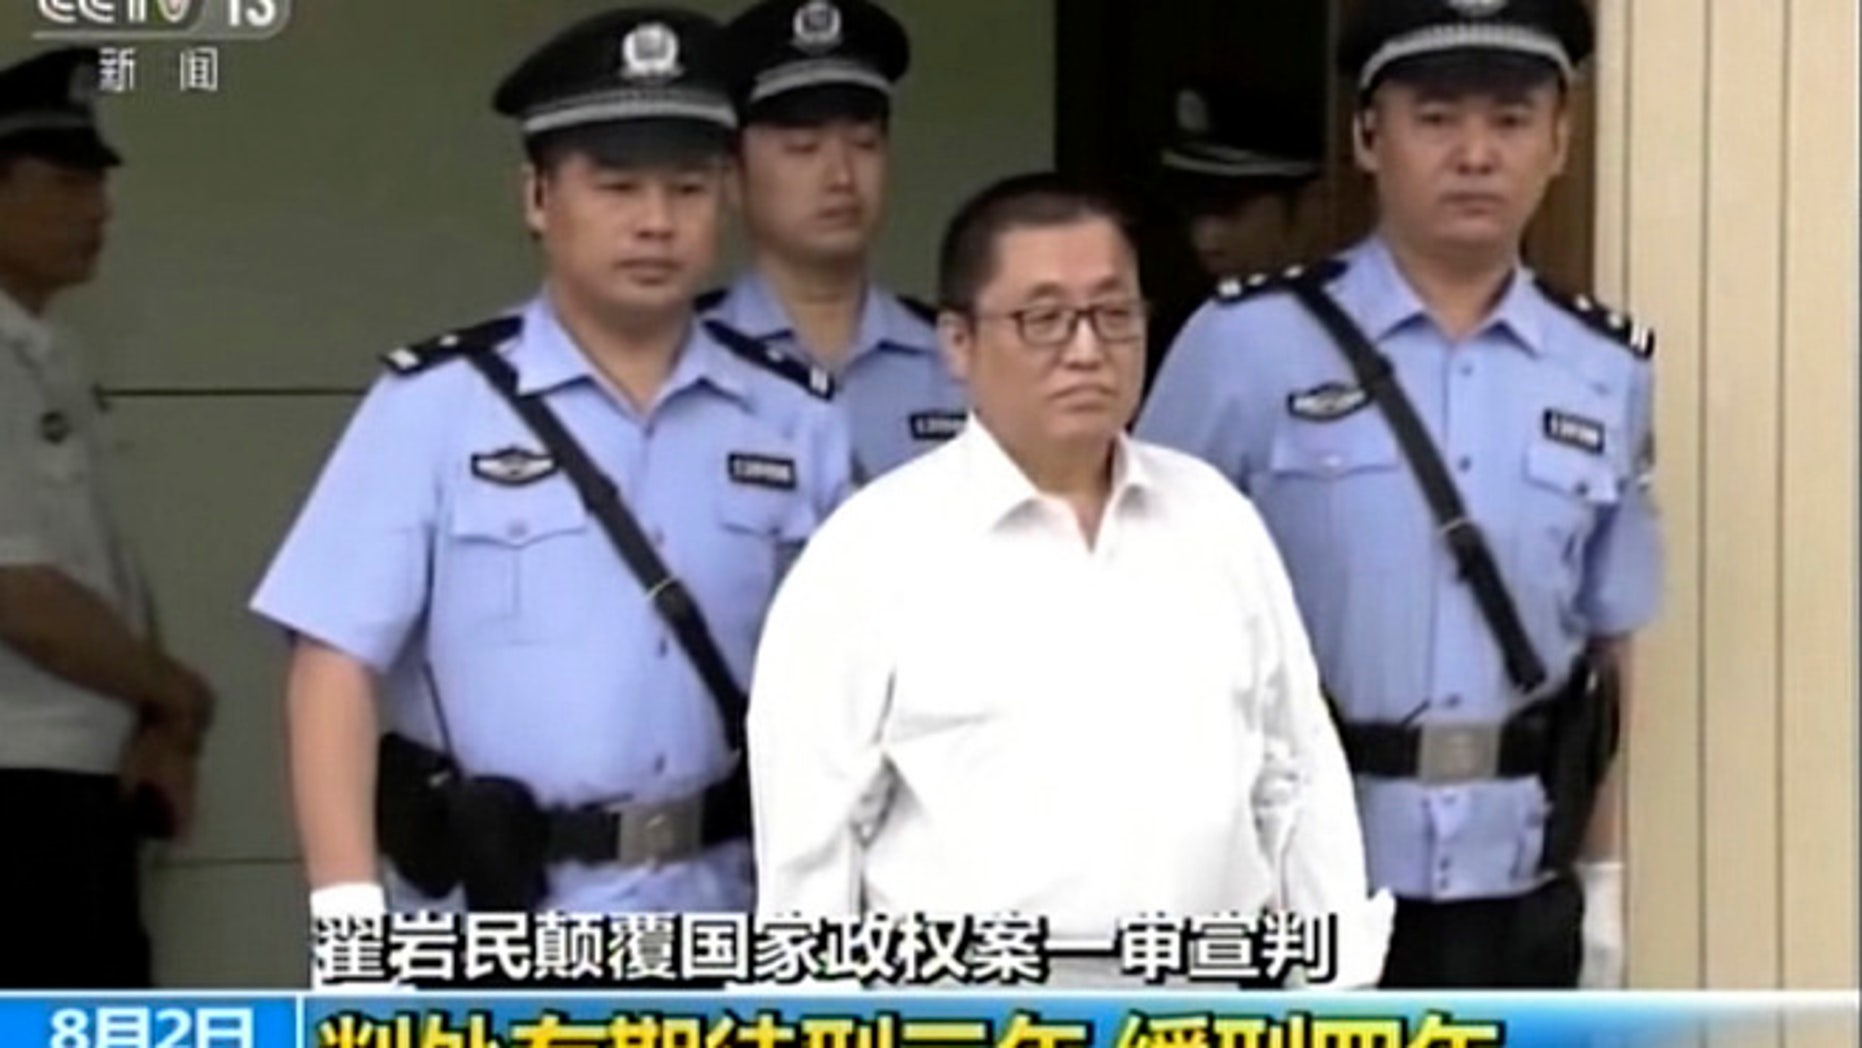 Aug. 2: China's CCTV and made available via AP Video, Zhai Yanmin wears a white shirt is escorted by policemen as he arrives the Tianjin No. 2 Intermediate People's Court in northern China's Tianjin Municipality.